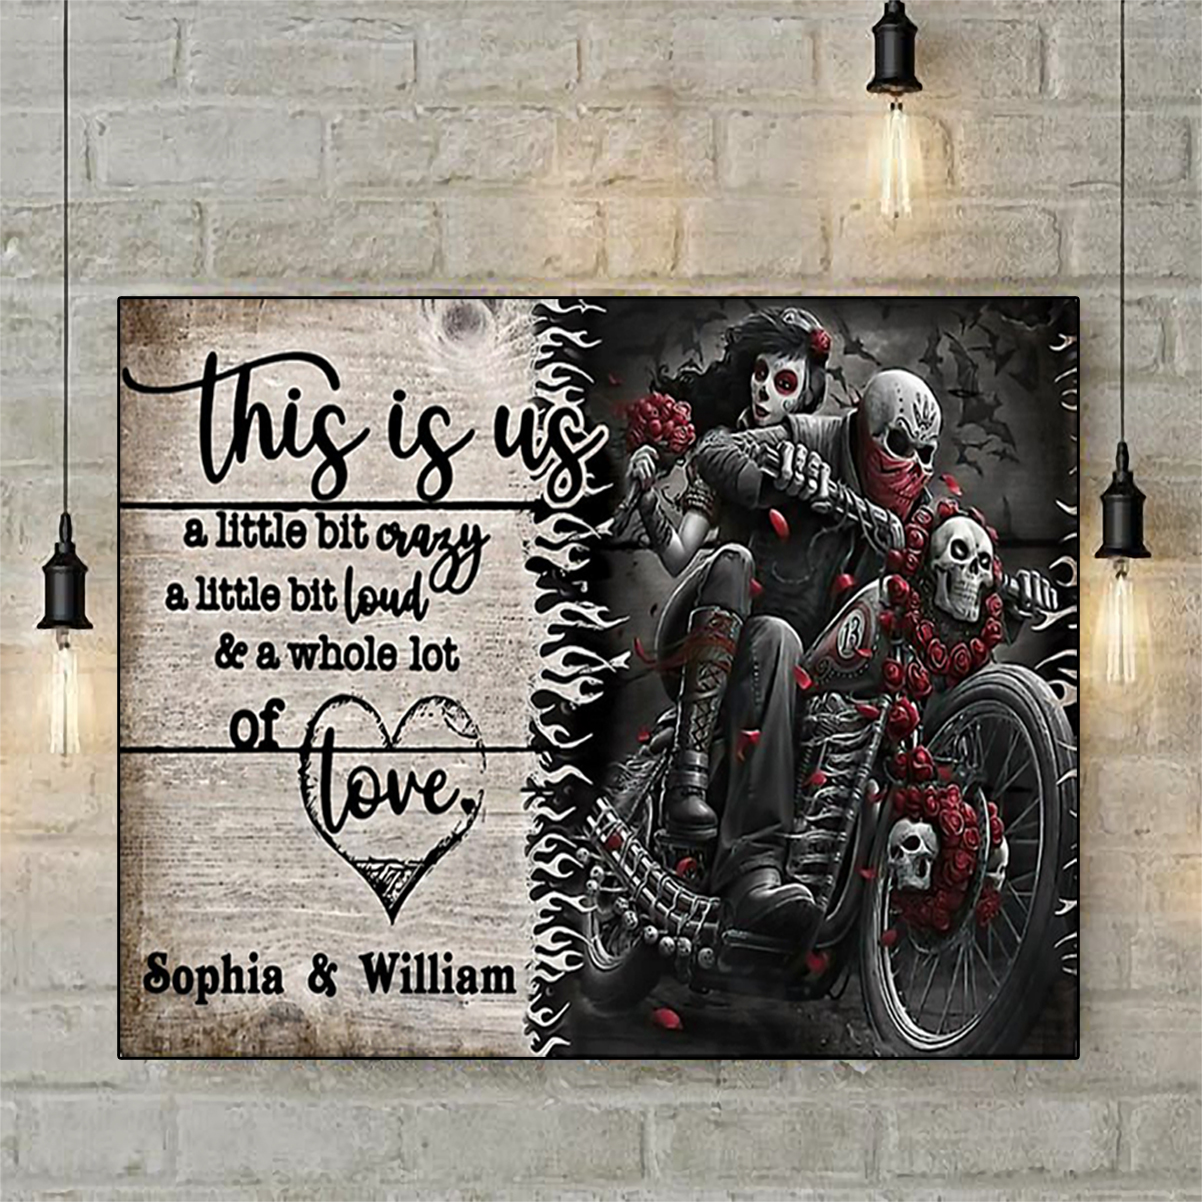 Personalized motorcycling skeleton this is us a little bit crazy poster A3